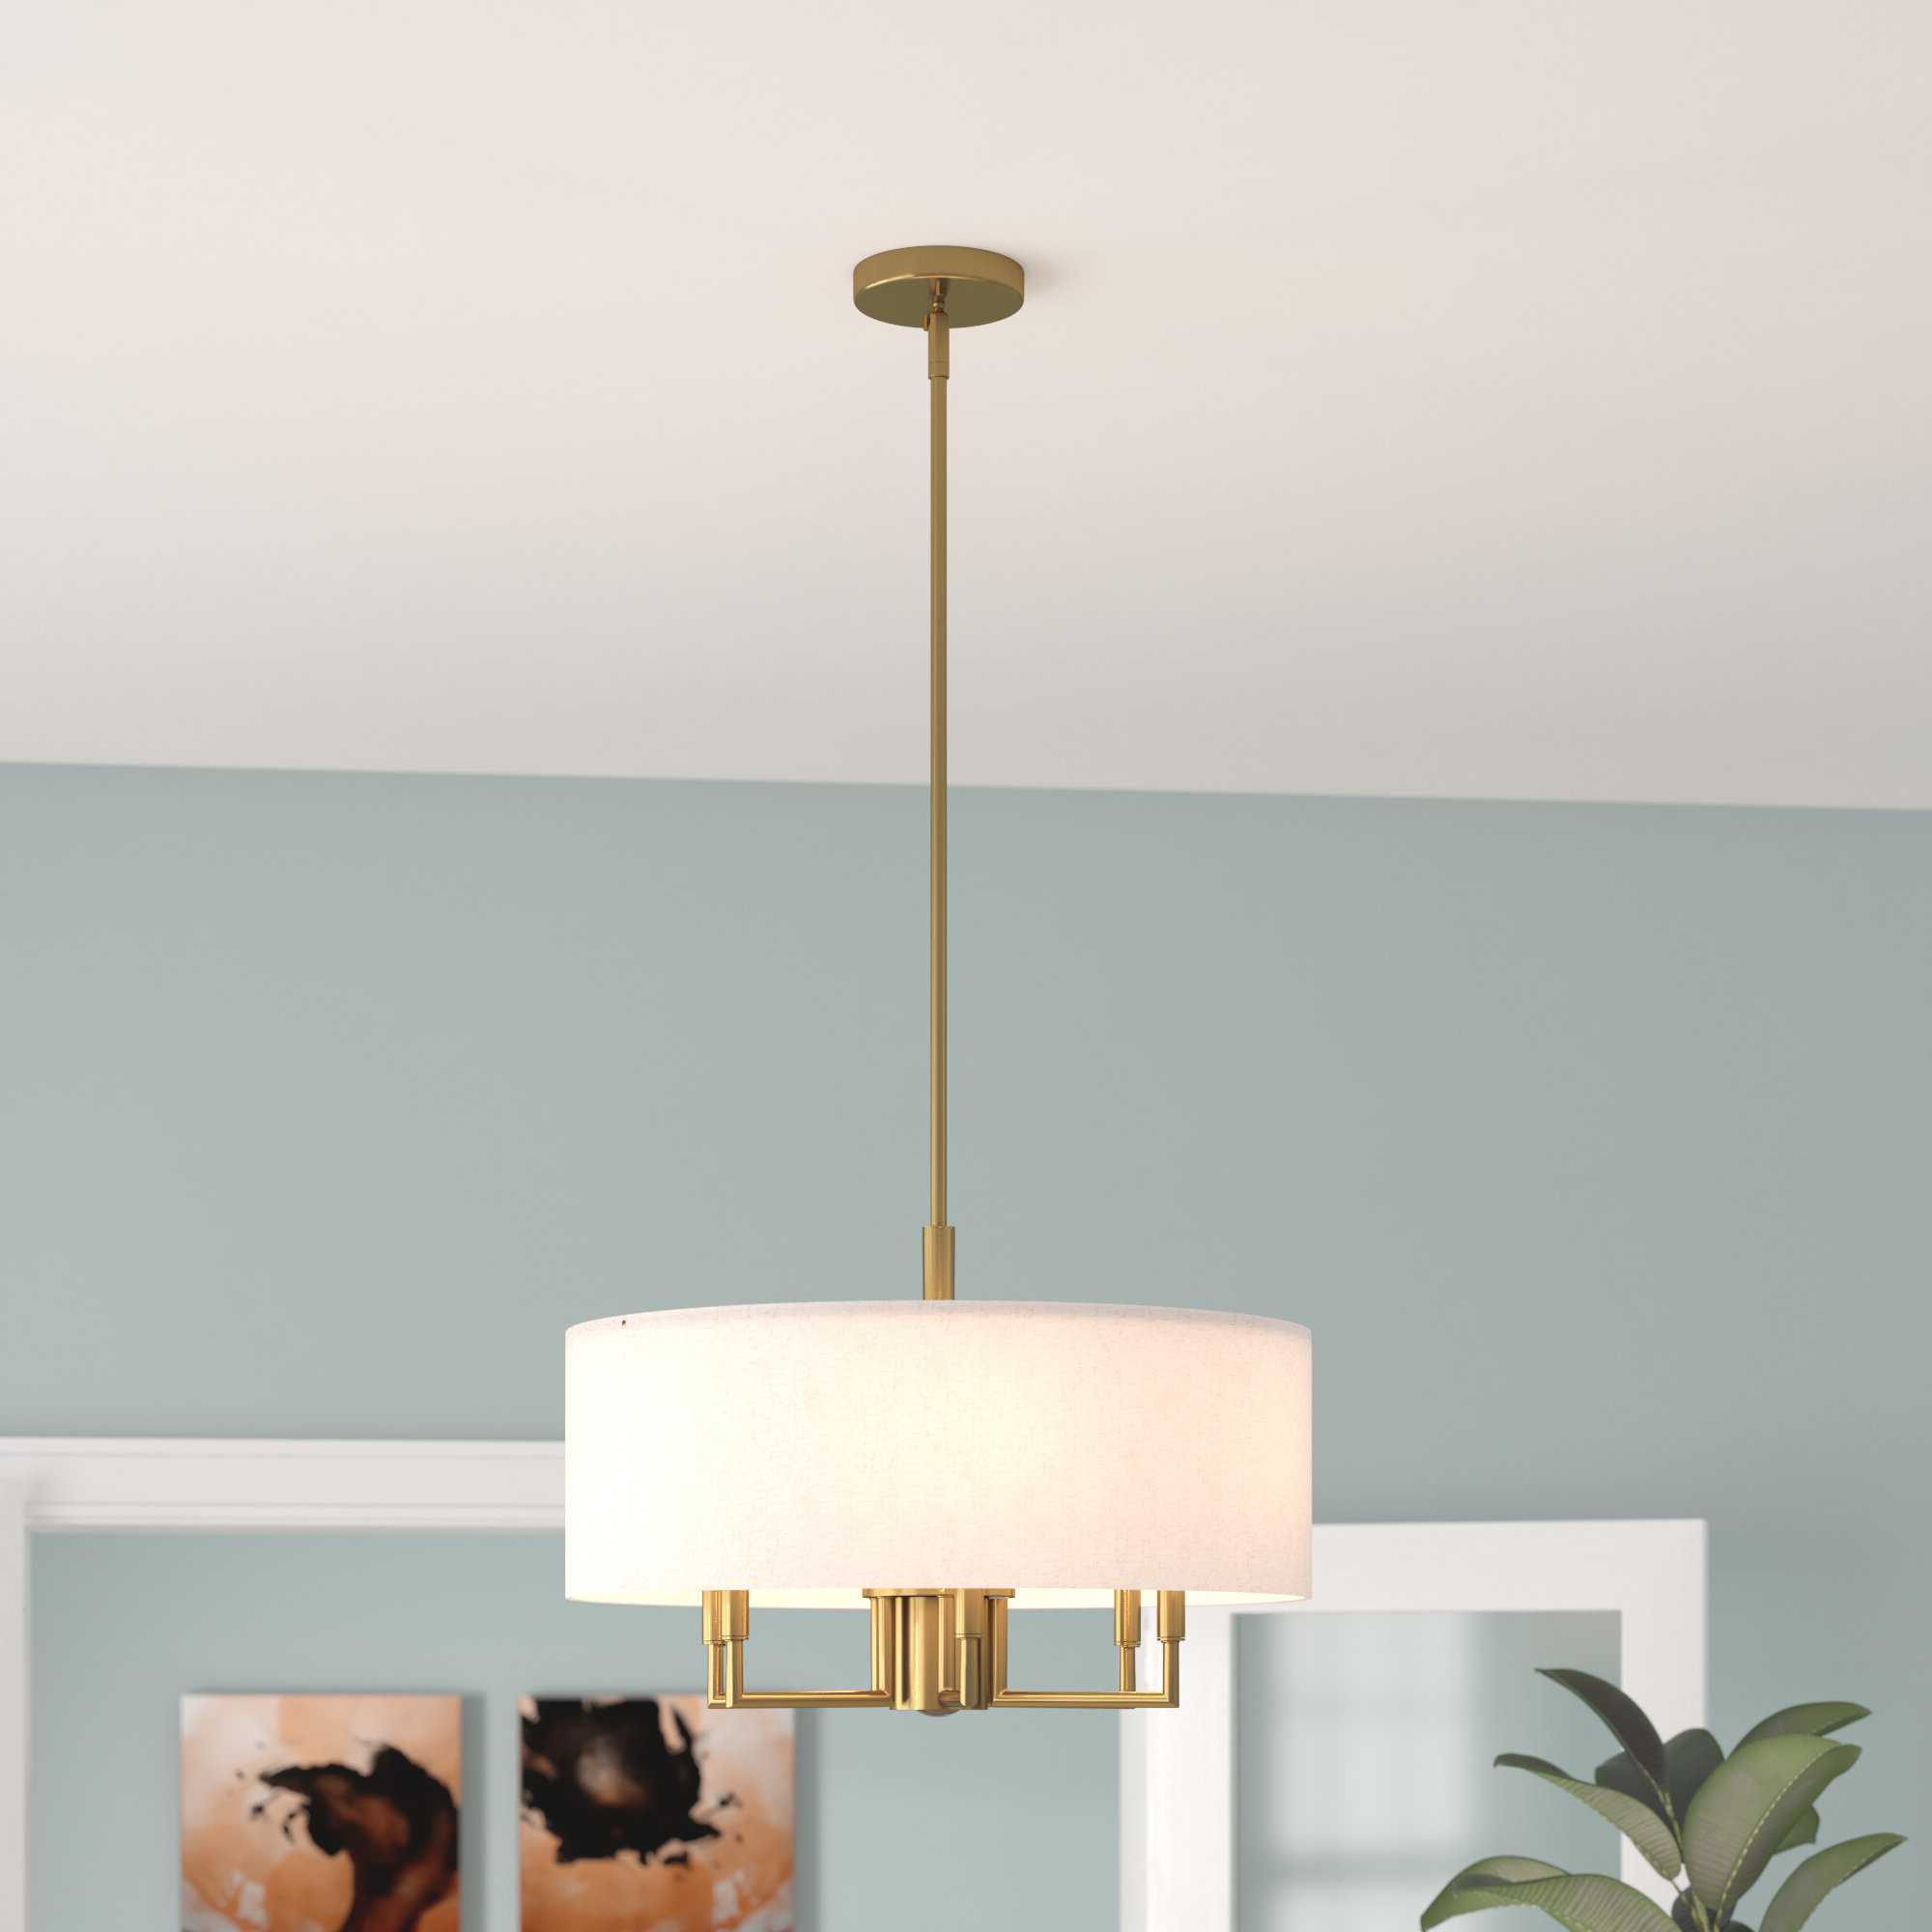 Alina 5 Light Drum Chandeliers Pertaining To Well Liked Ivy Bronx Alina 6 Light Drum Chandelier & Reviews (Gallery 7 of 20)